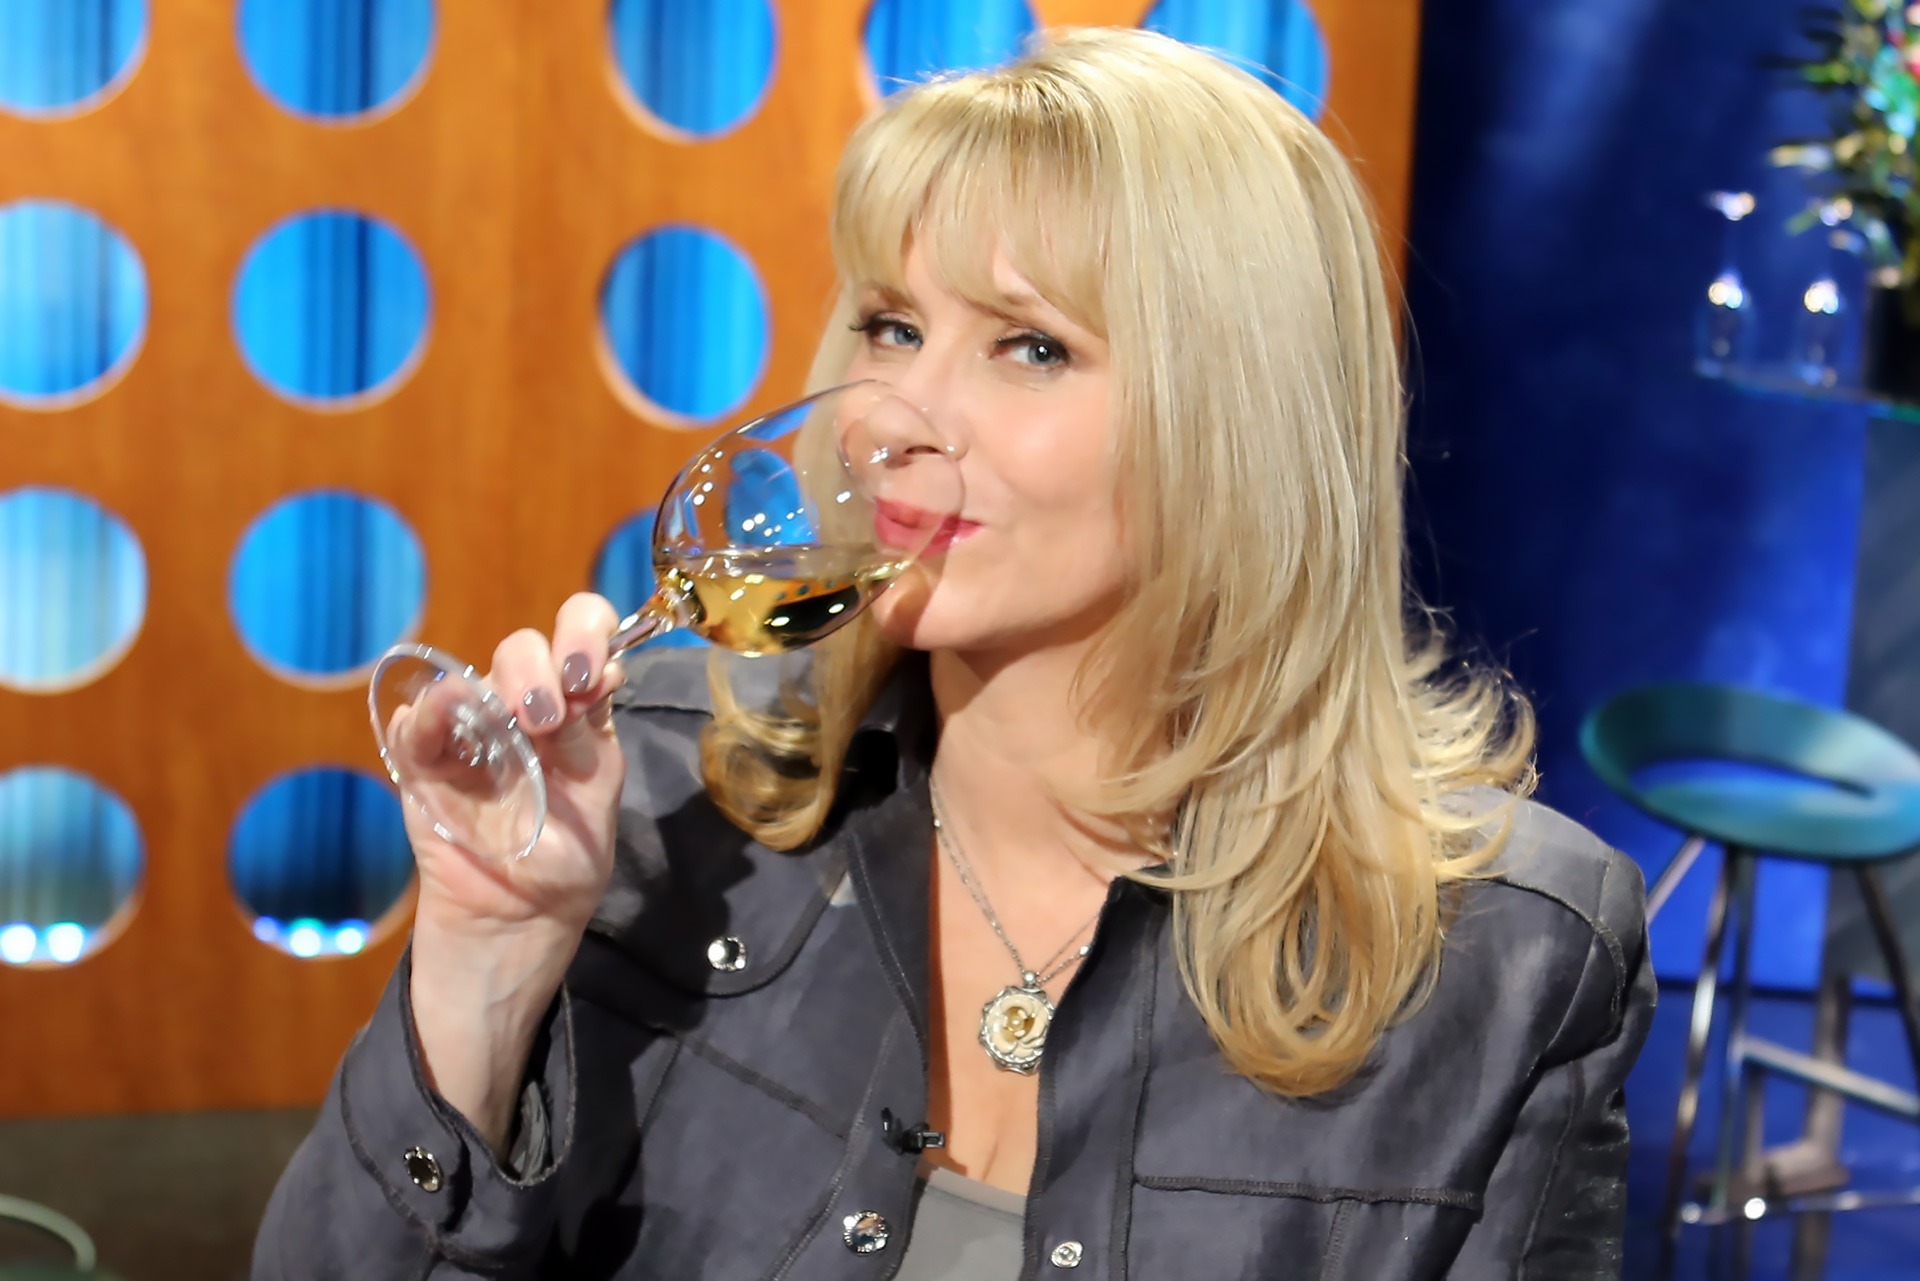 Host Leslie Sbrocco sipping wine on set